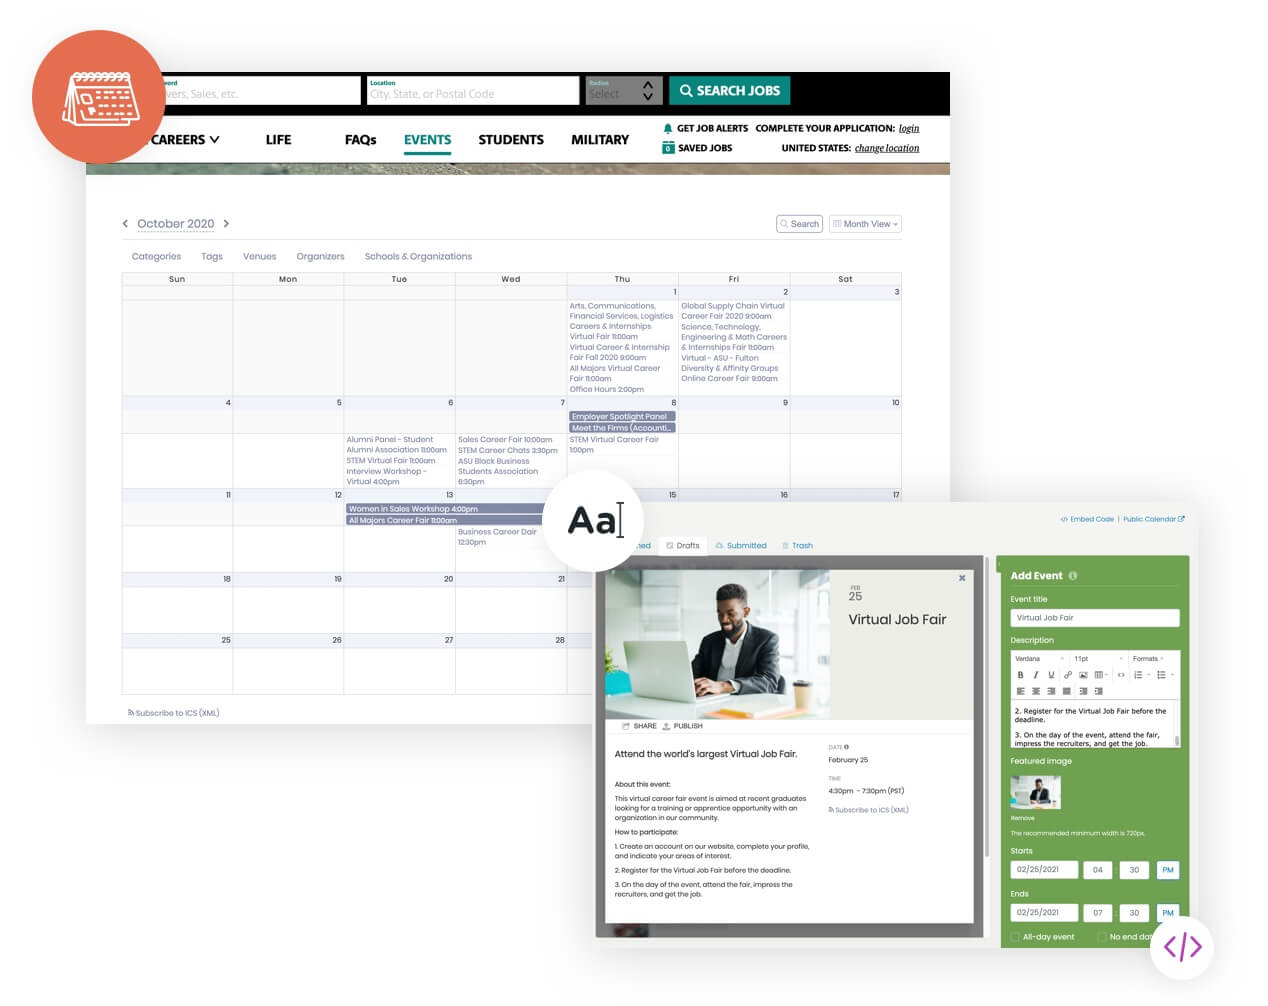 training calendar embed on website dashboard creating virtual event